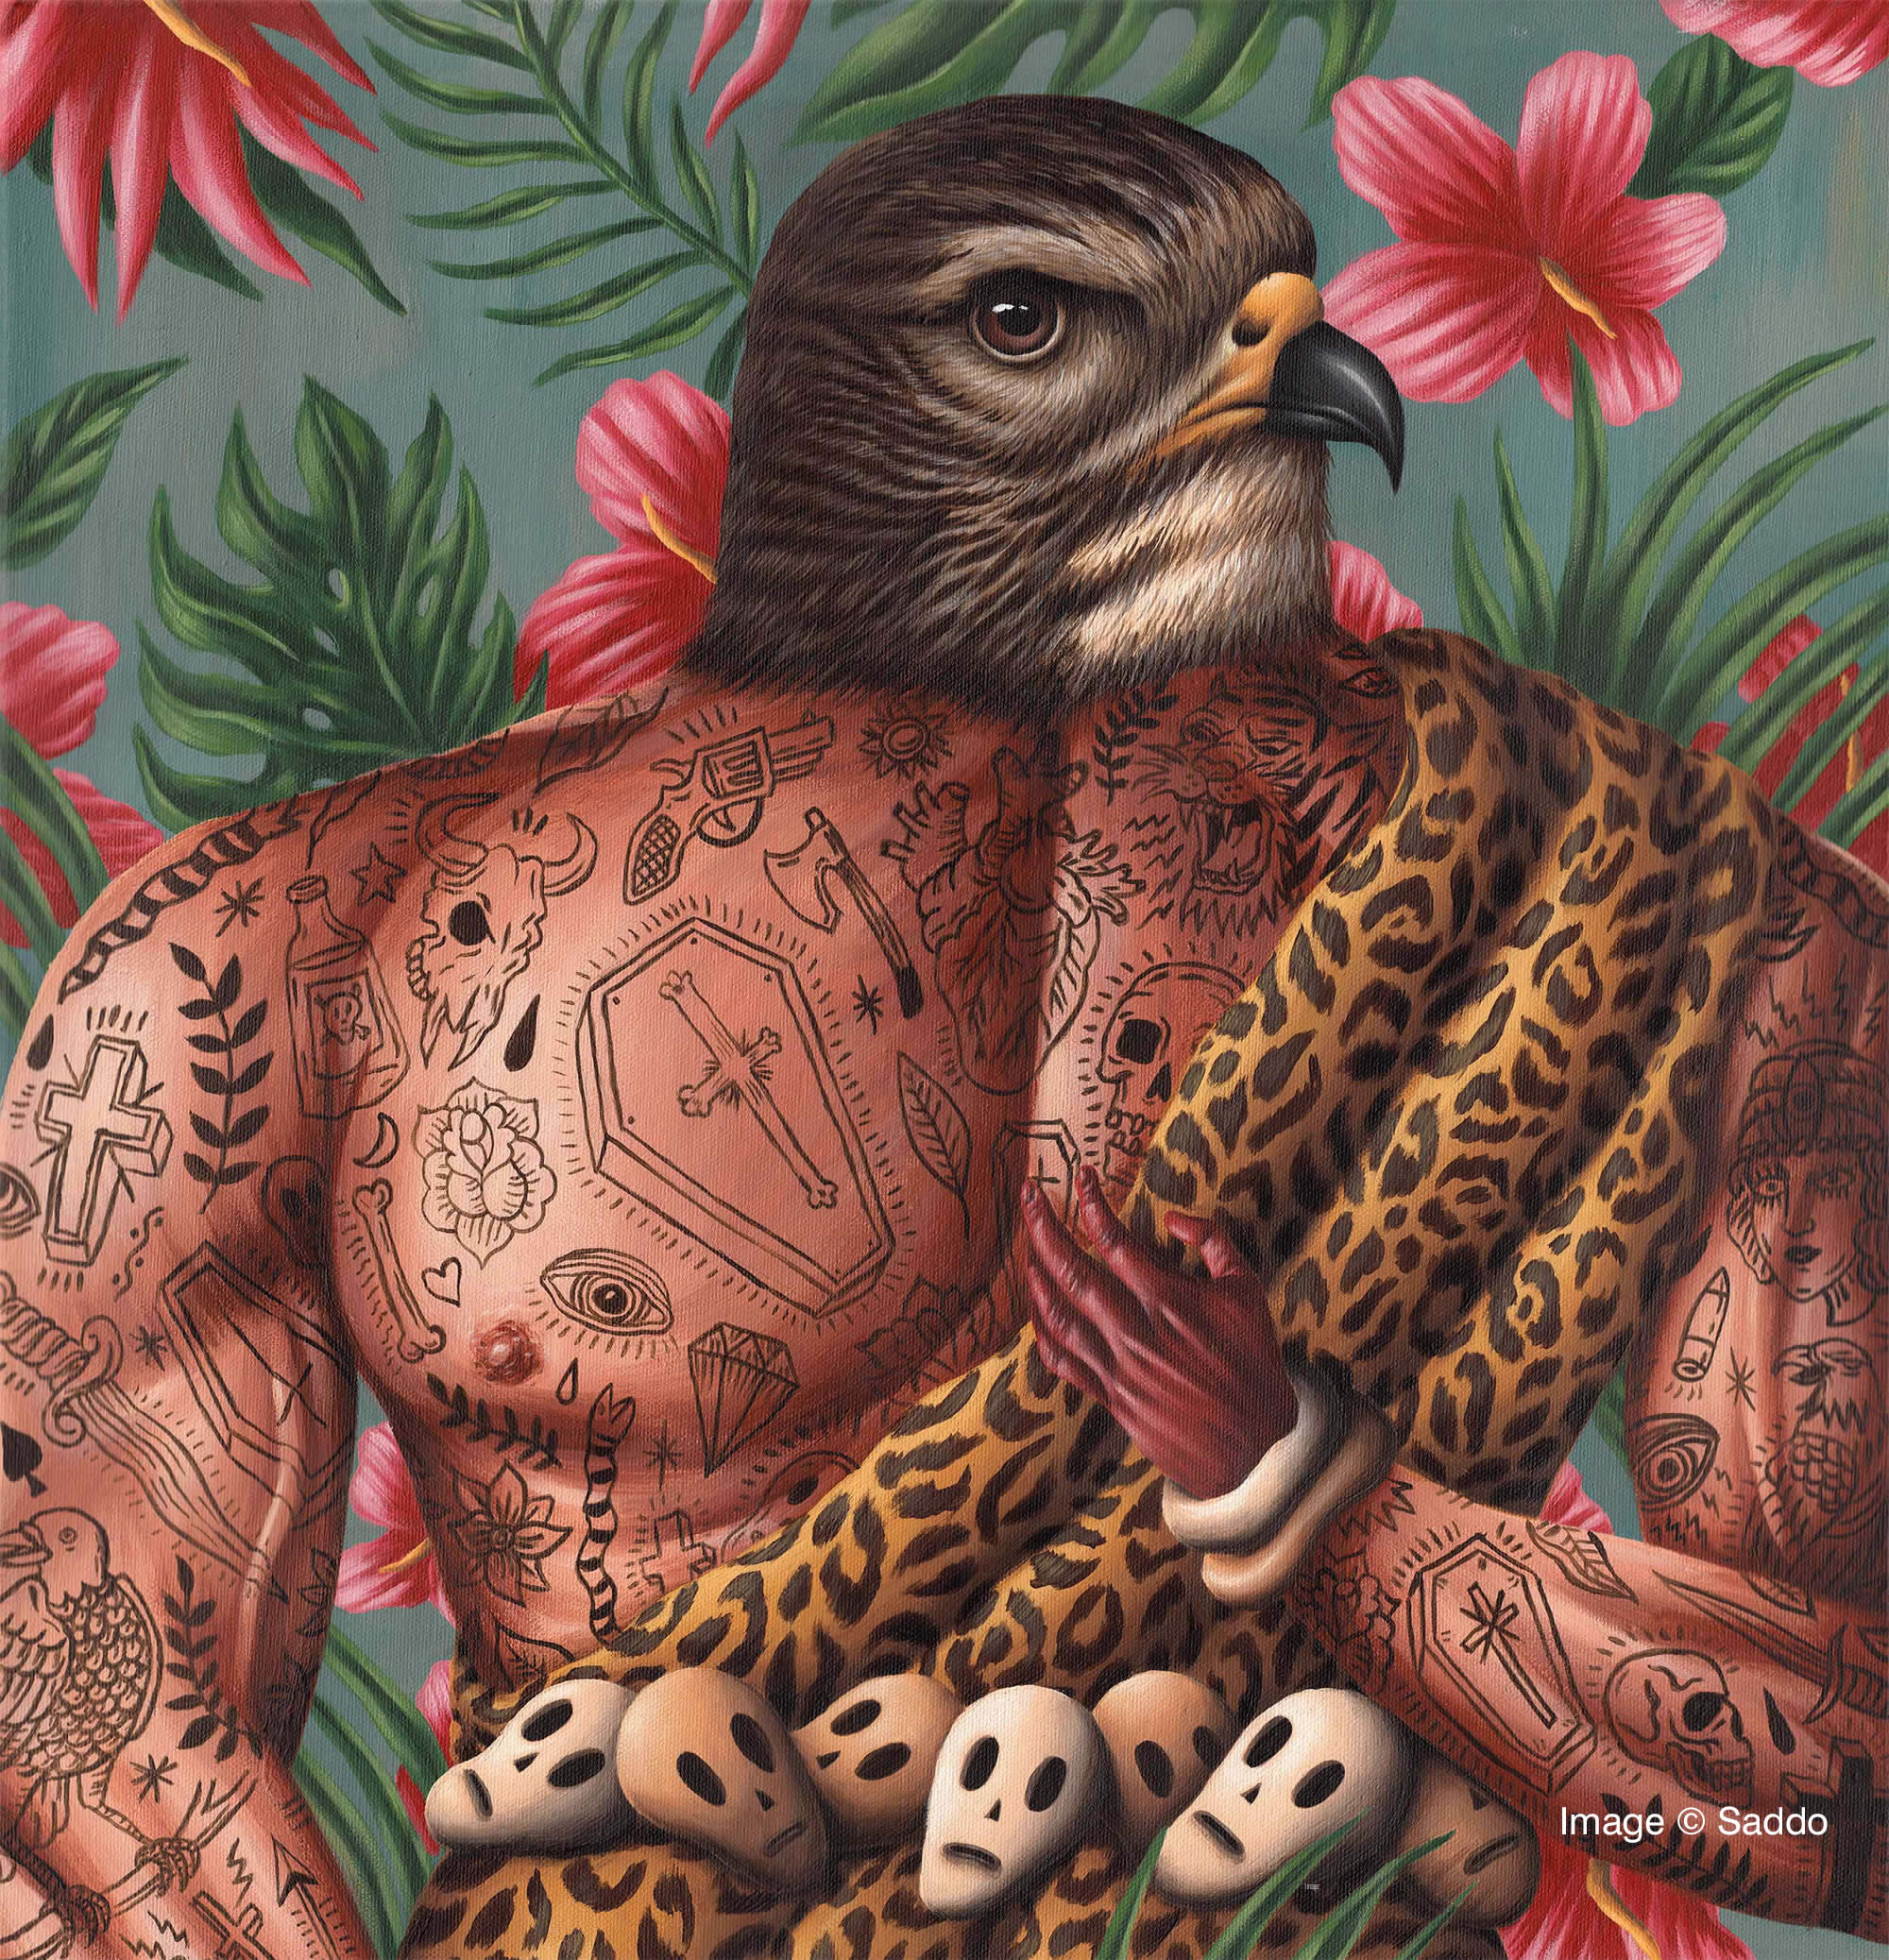 From Taboo to Mainstream: Tattoo Art in Illustration, Ceramics, and Embroidery